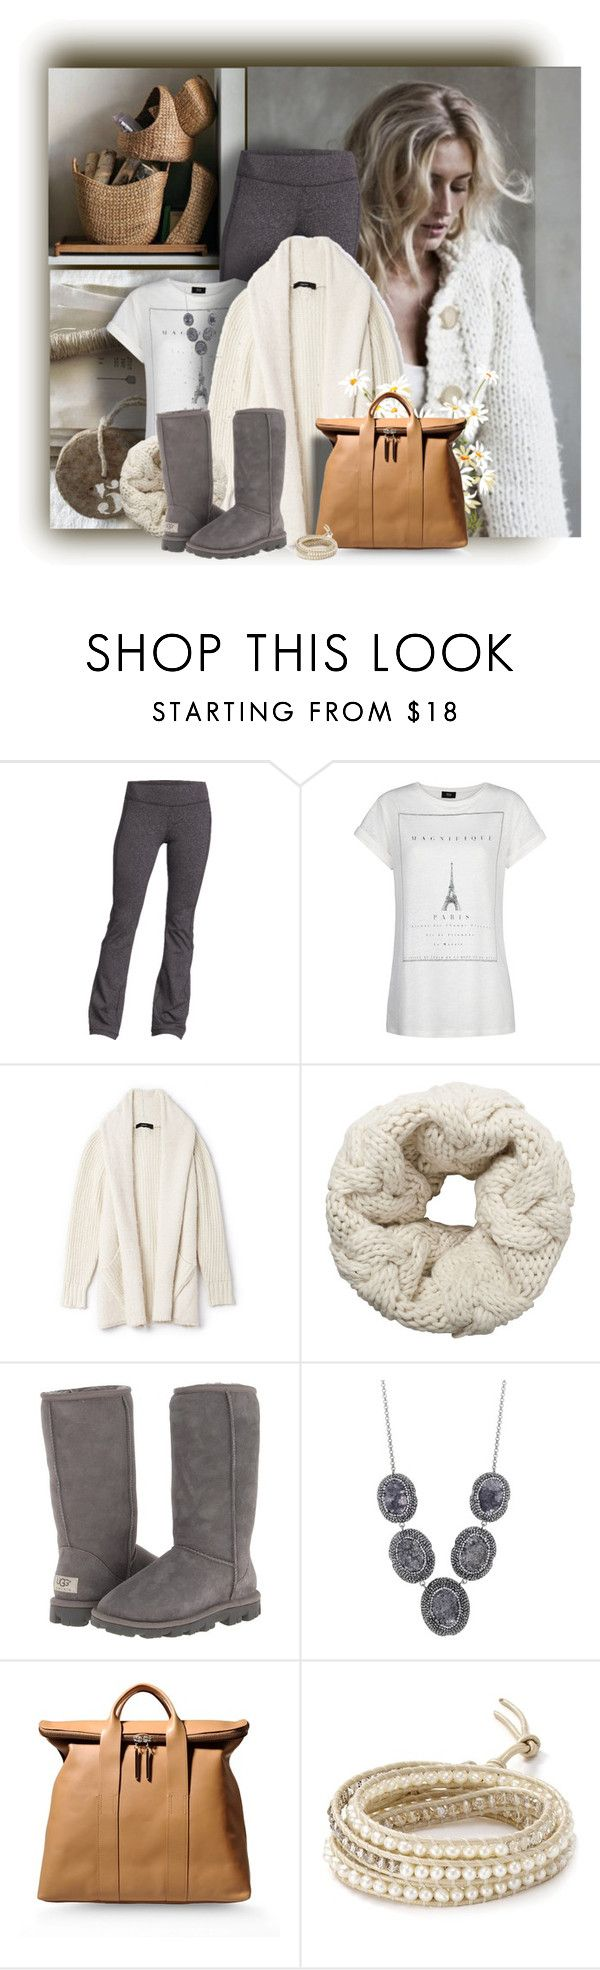 """Cozy and warm"" by sherry7411 ❤ liked on Polyvore featuring Pottery Barn, Old Navy, MANGO, Forever 21, Vero Moda, UGG Australia, Soru Jewellery, 3.1 Phillip Lim, Chan Luu and cozy"